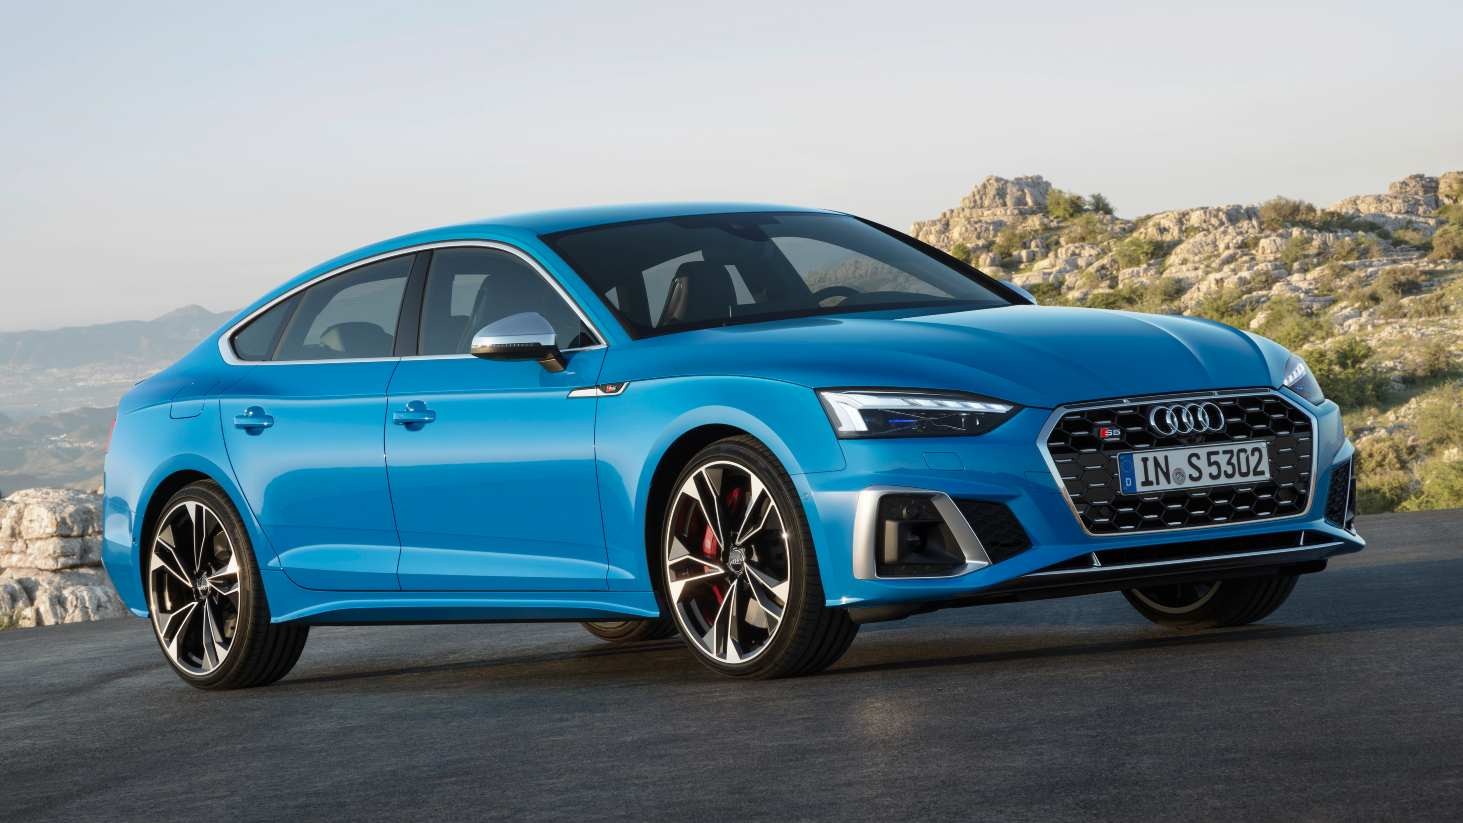 Audi S5 Sportback facelift to be launched in India on 22 March, gets 354 hp V6 petrol engine